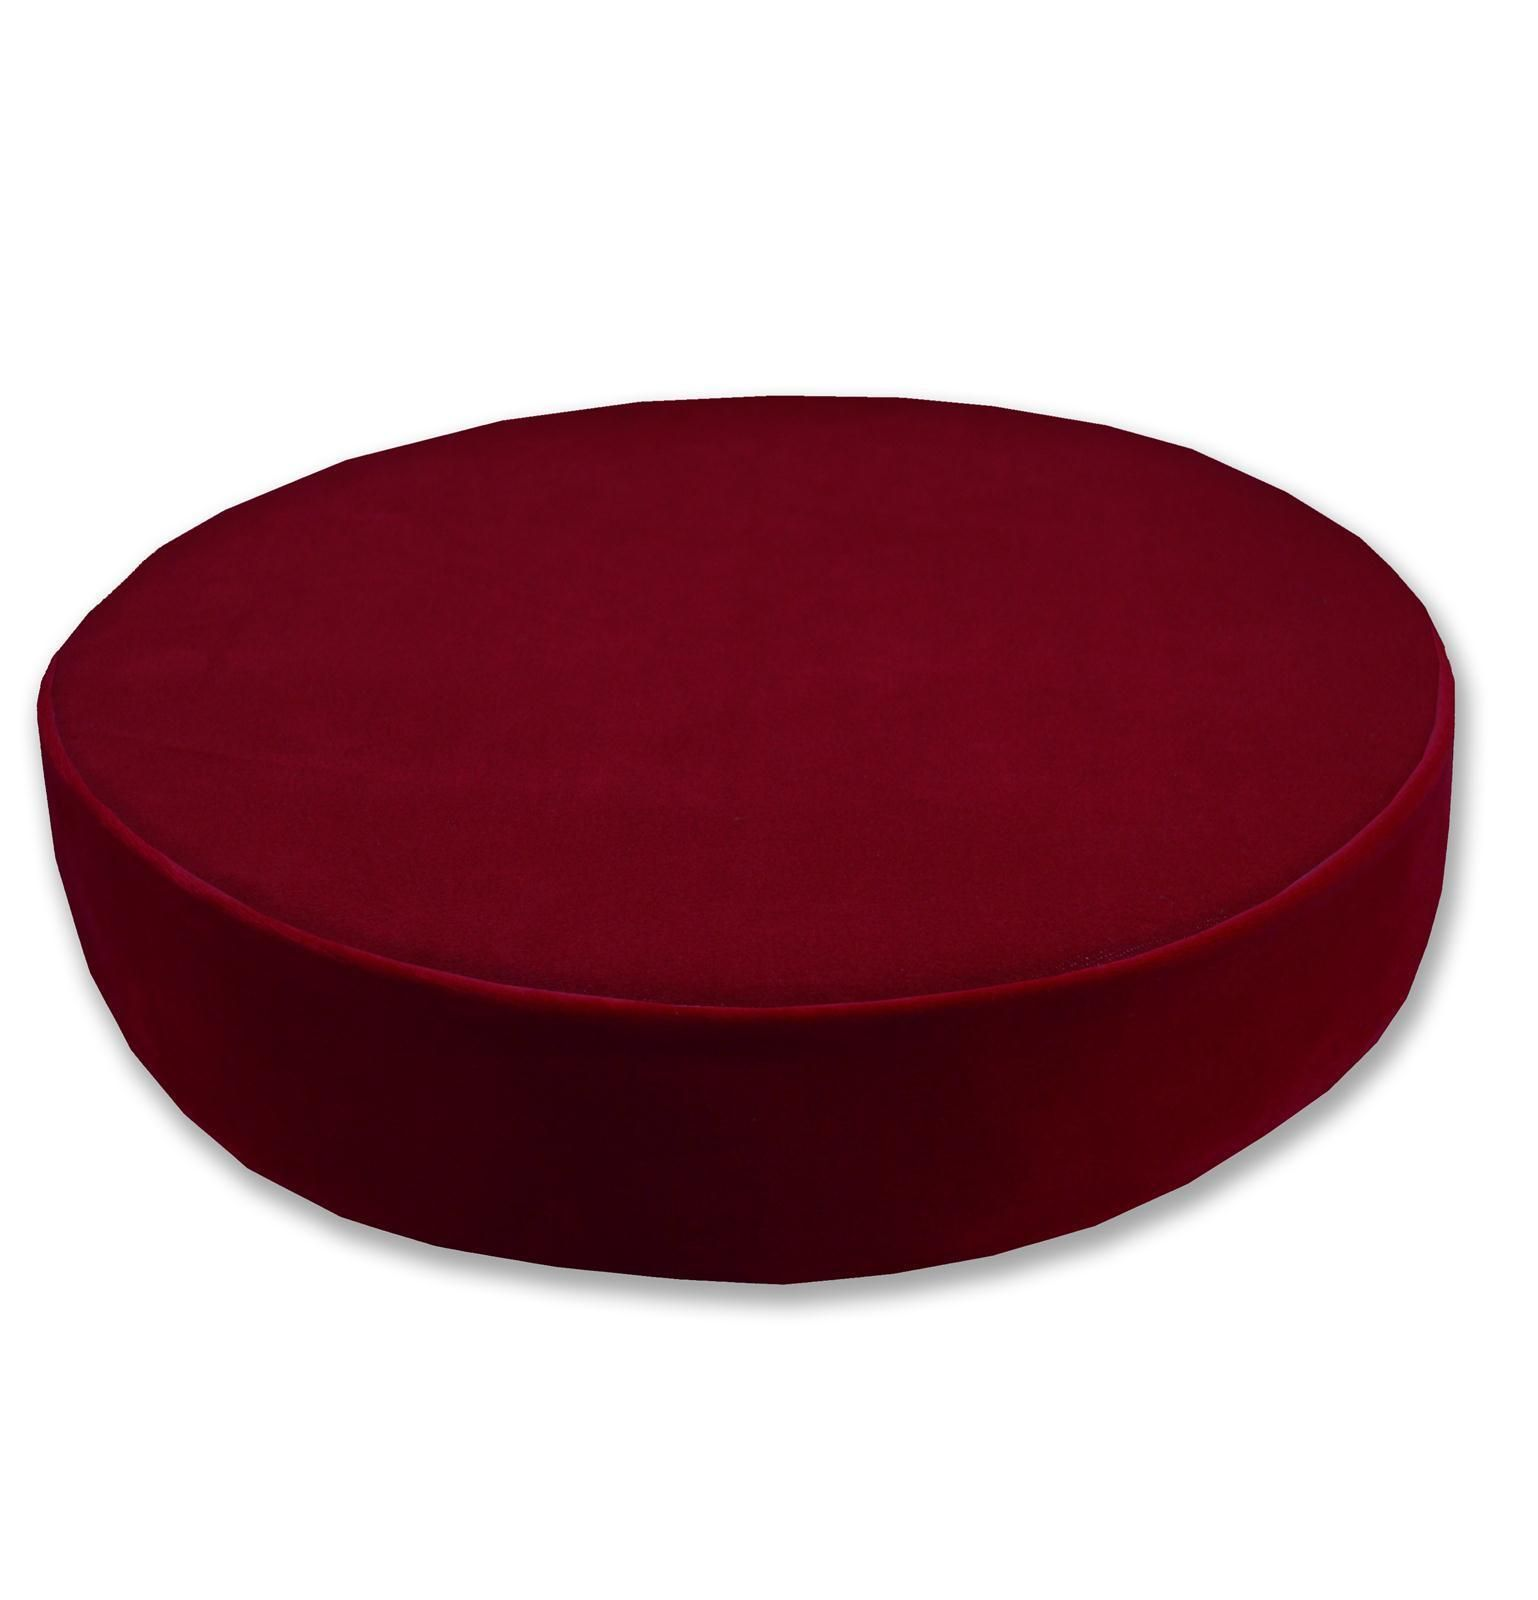 Mfr deep red microfiber velvet thick d round seat cushion cover